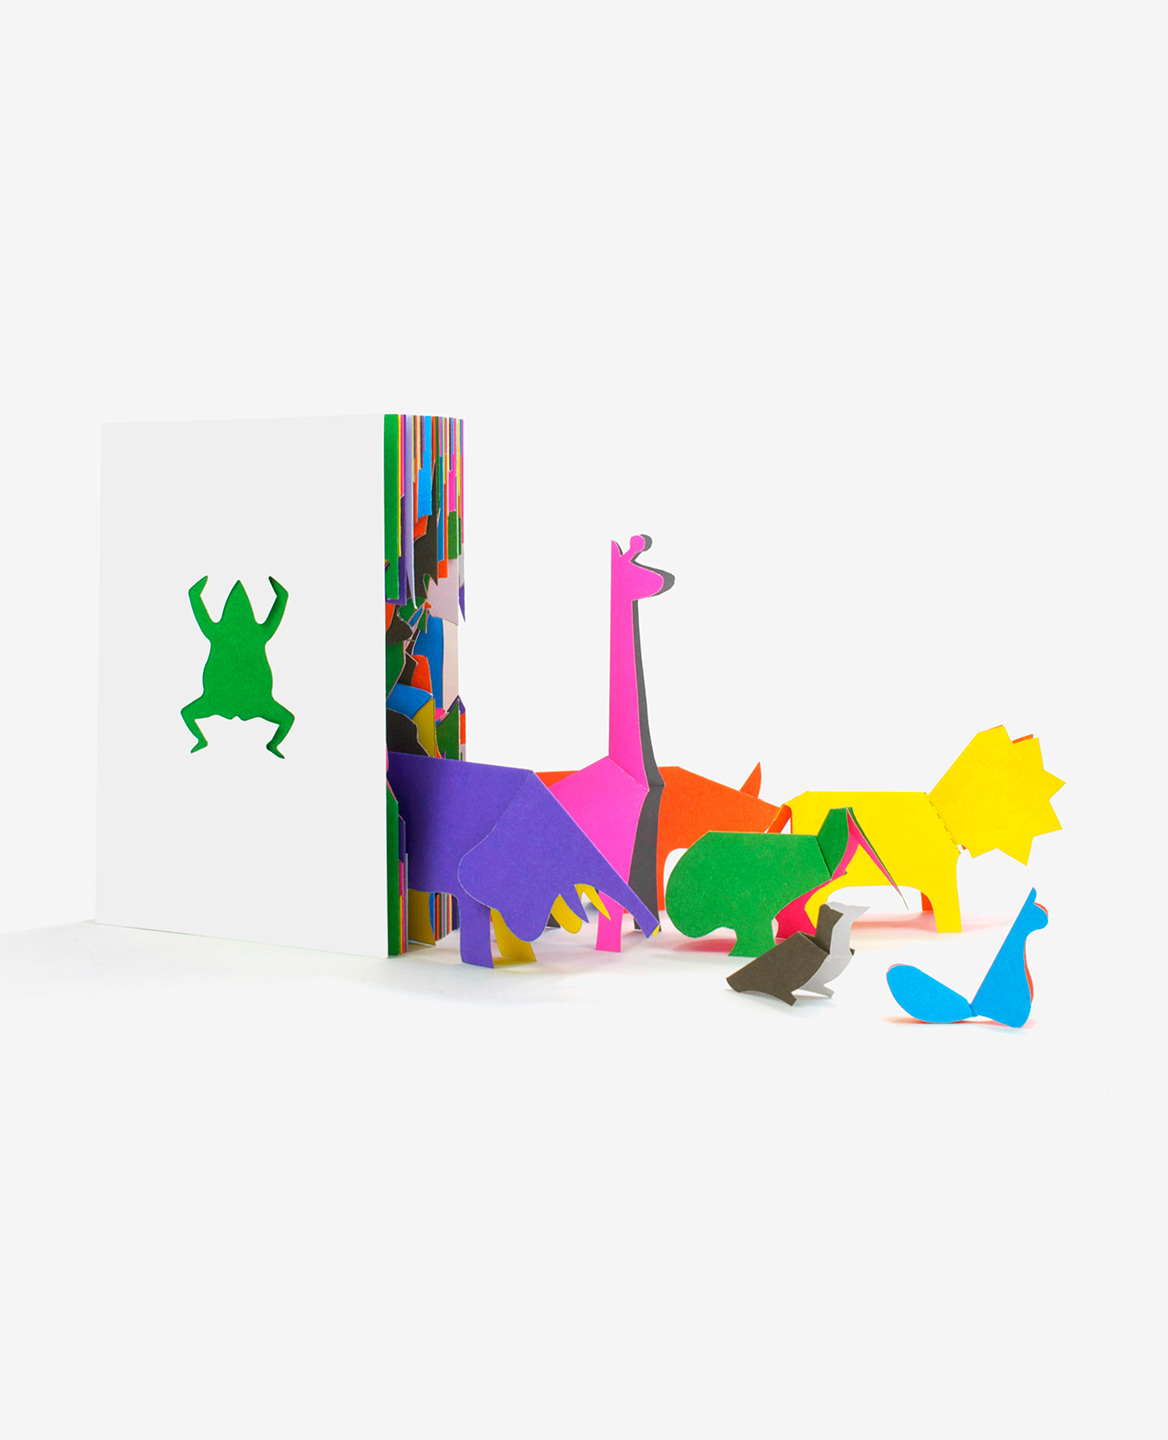 Multicolored animals coming out of the book Zoo in my hand by Inkyeong & Sunkyung Kim published by Éditions du livre